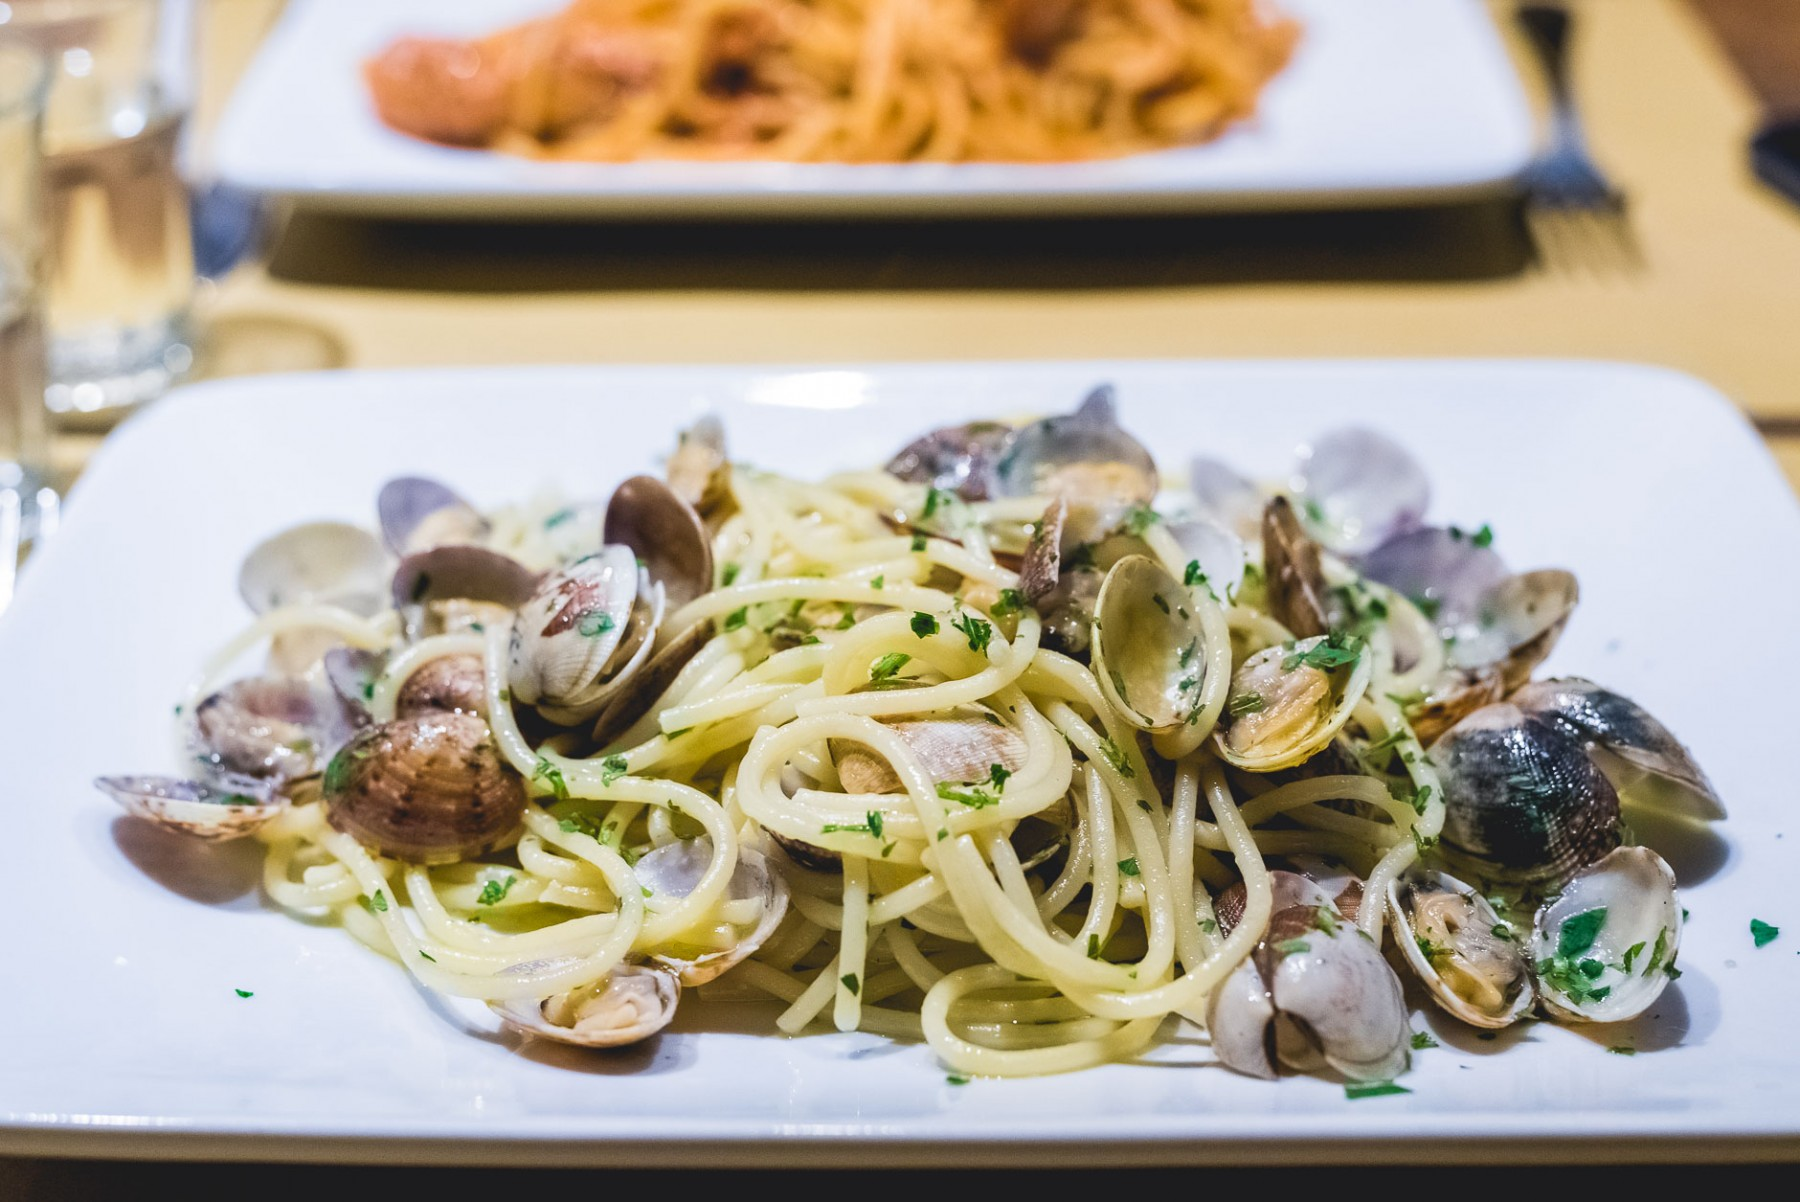 Seafood pasta in Venice, Italy